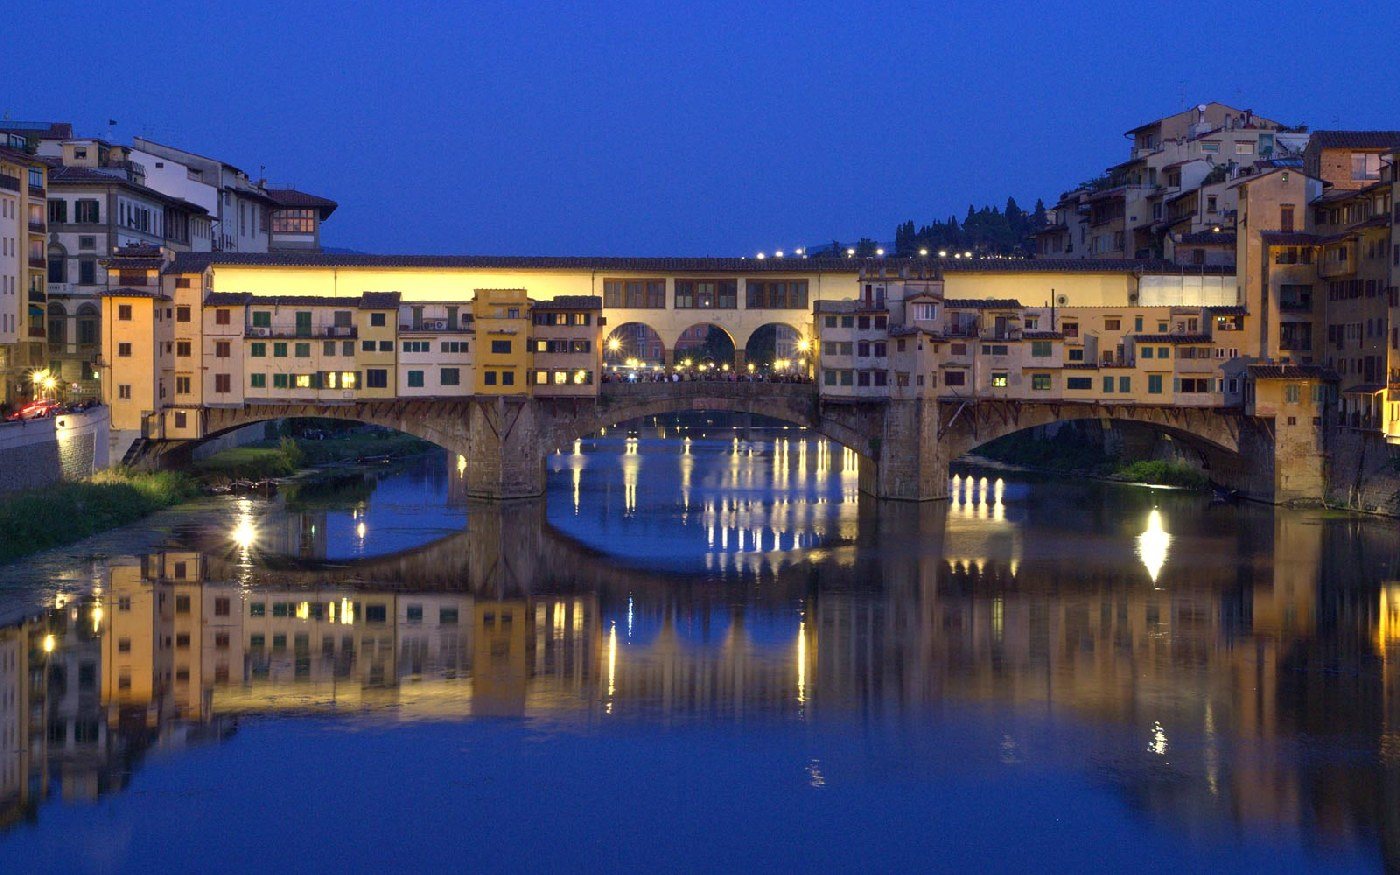 Rumor Has it, Ponte Vecchio still stands thanks to Hitler